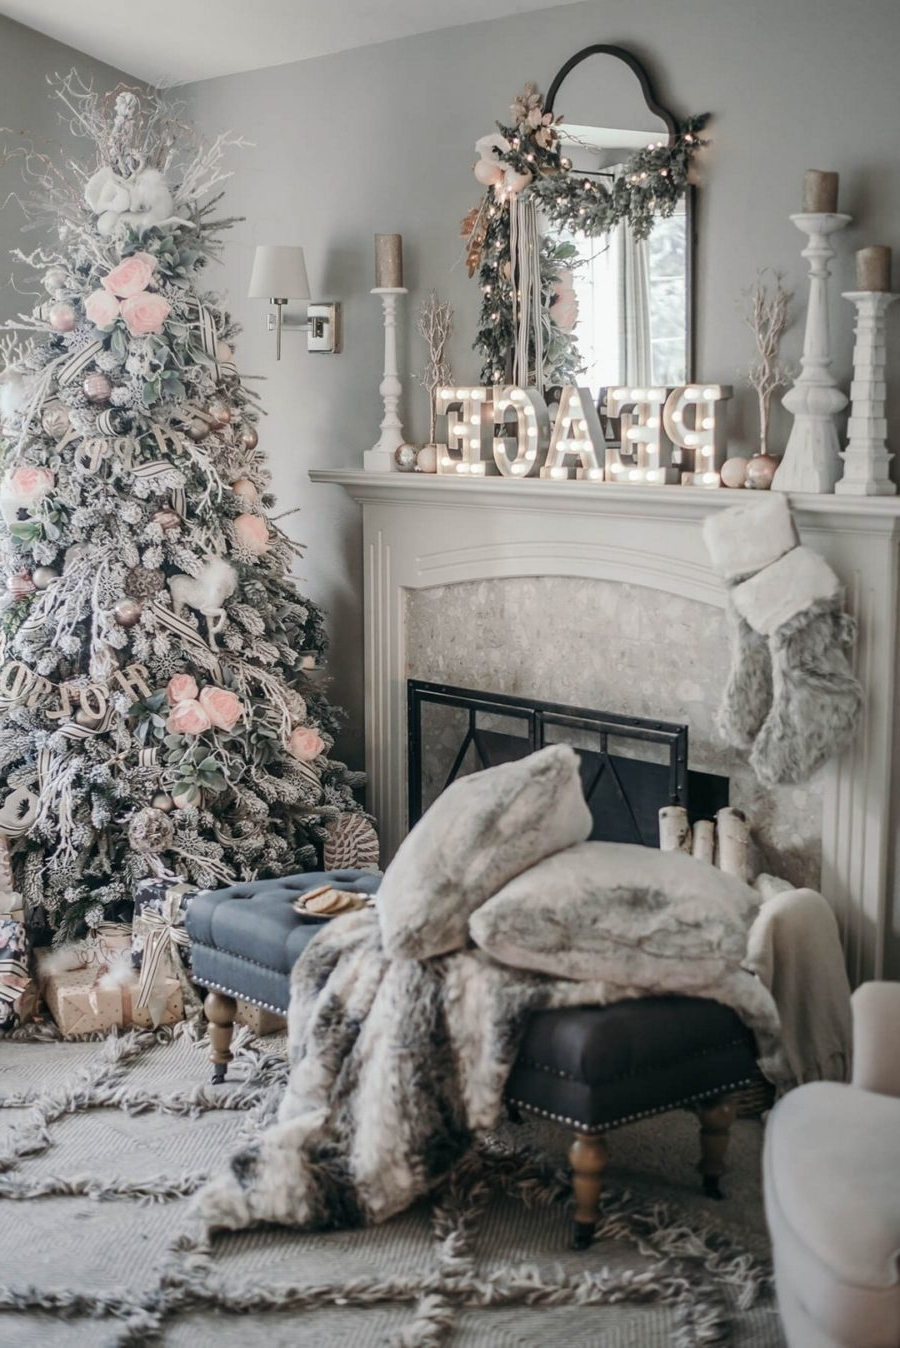 10 Of The Best Christmas Decorating Themes To Inspire 2020